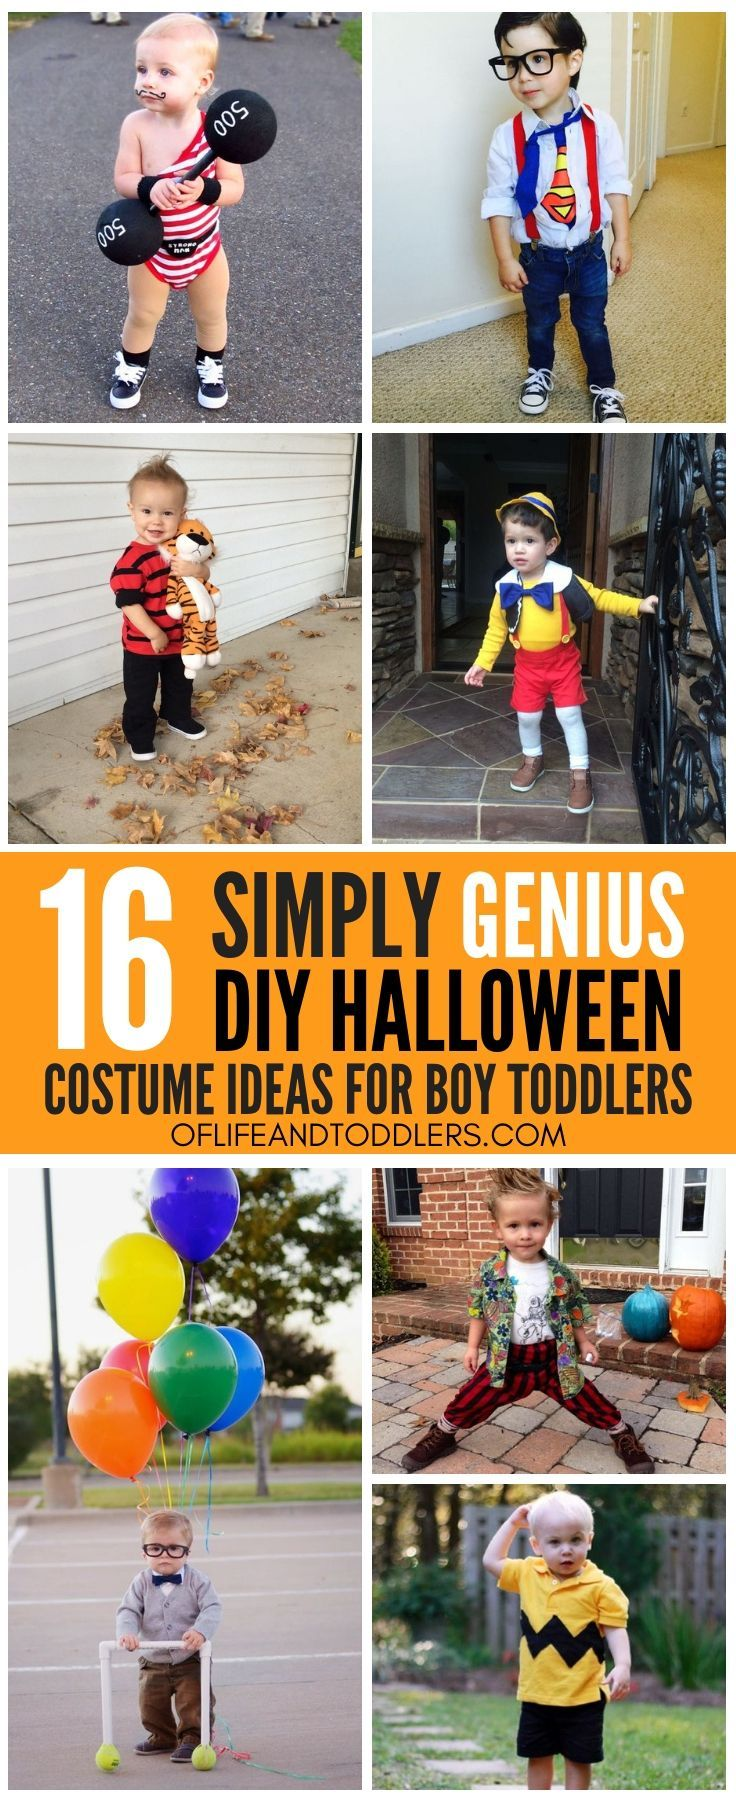 These little guys are just too cute! Share these DIY Halloween costumes ideas for toddler boys with your friends! #toddlerhalloween